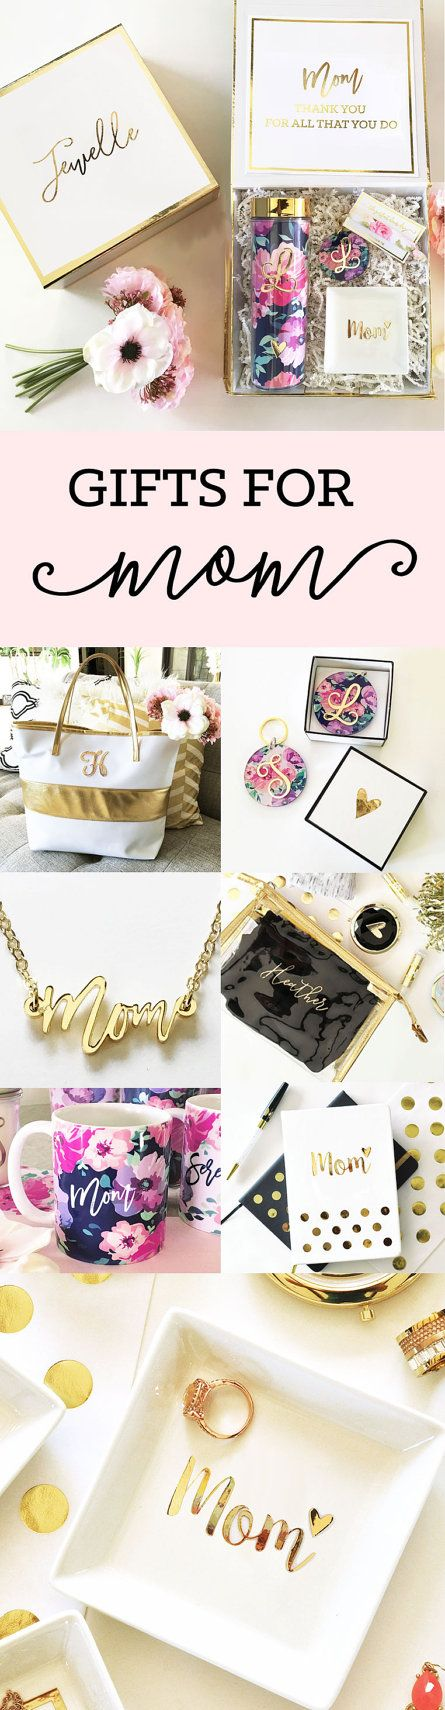 25 Best Ideas About Birthday Gift For Mom On Pinterest